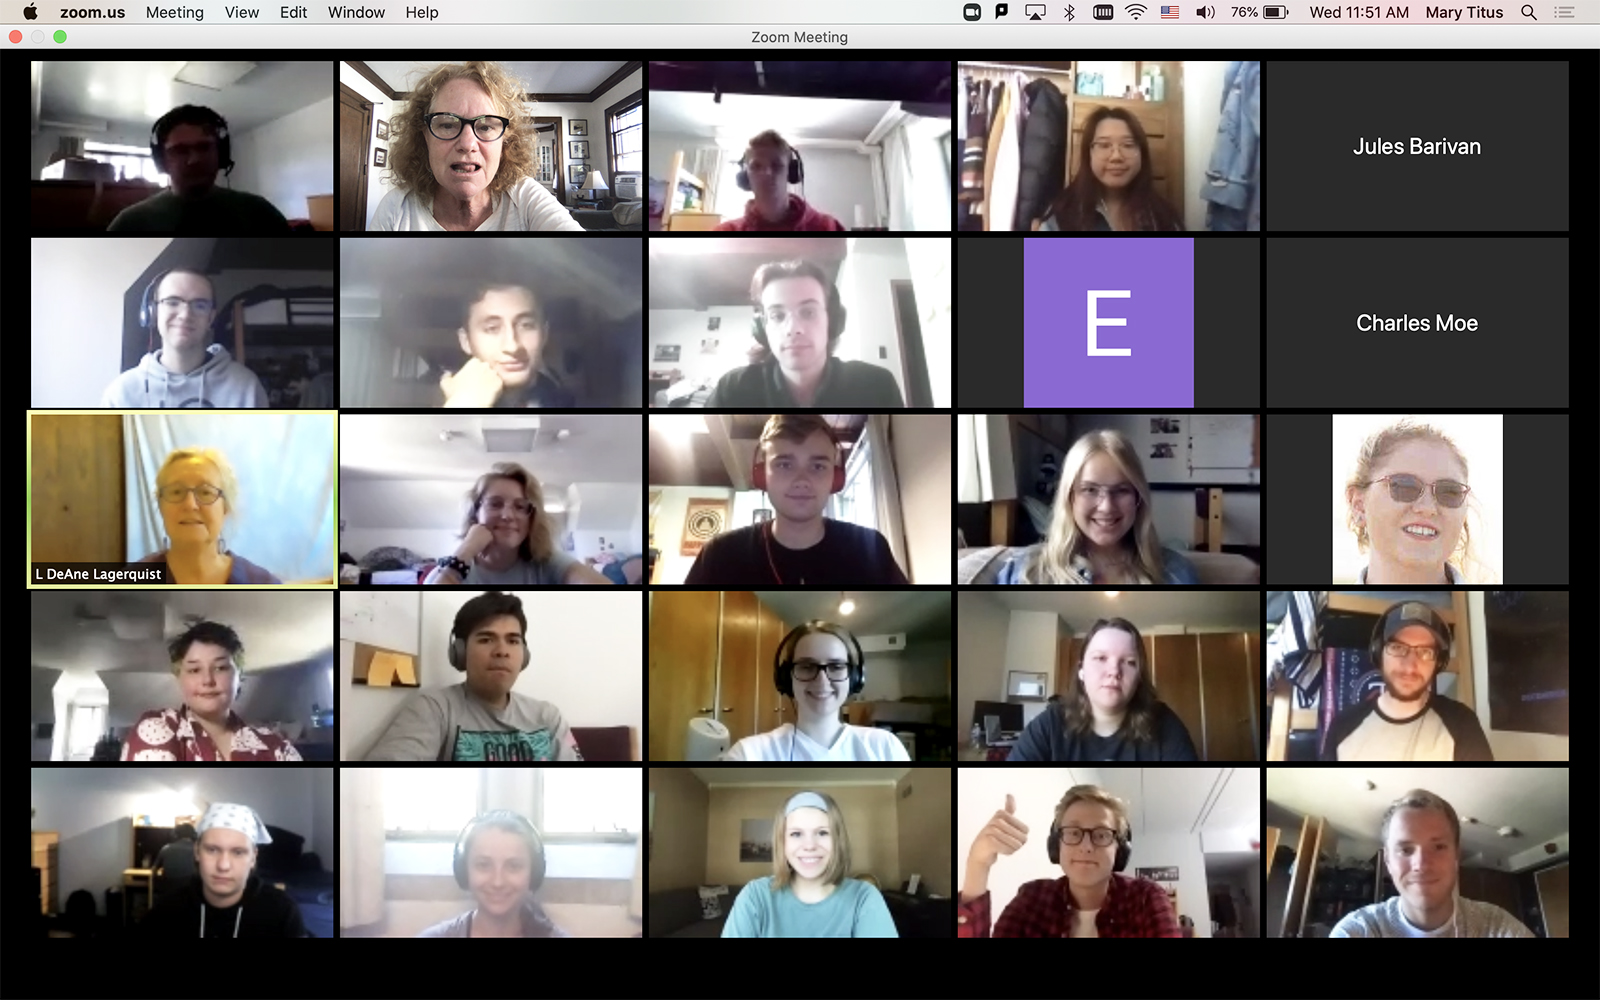 The American Conversations second-year class, led by Mary Titus and DeAne Lagerquist, gathers on Zoom this year.